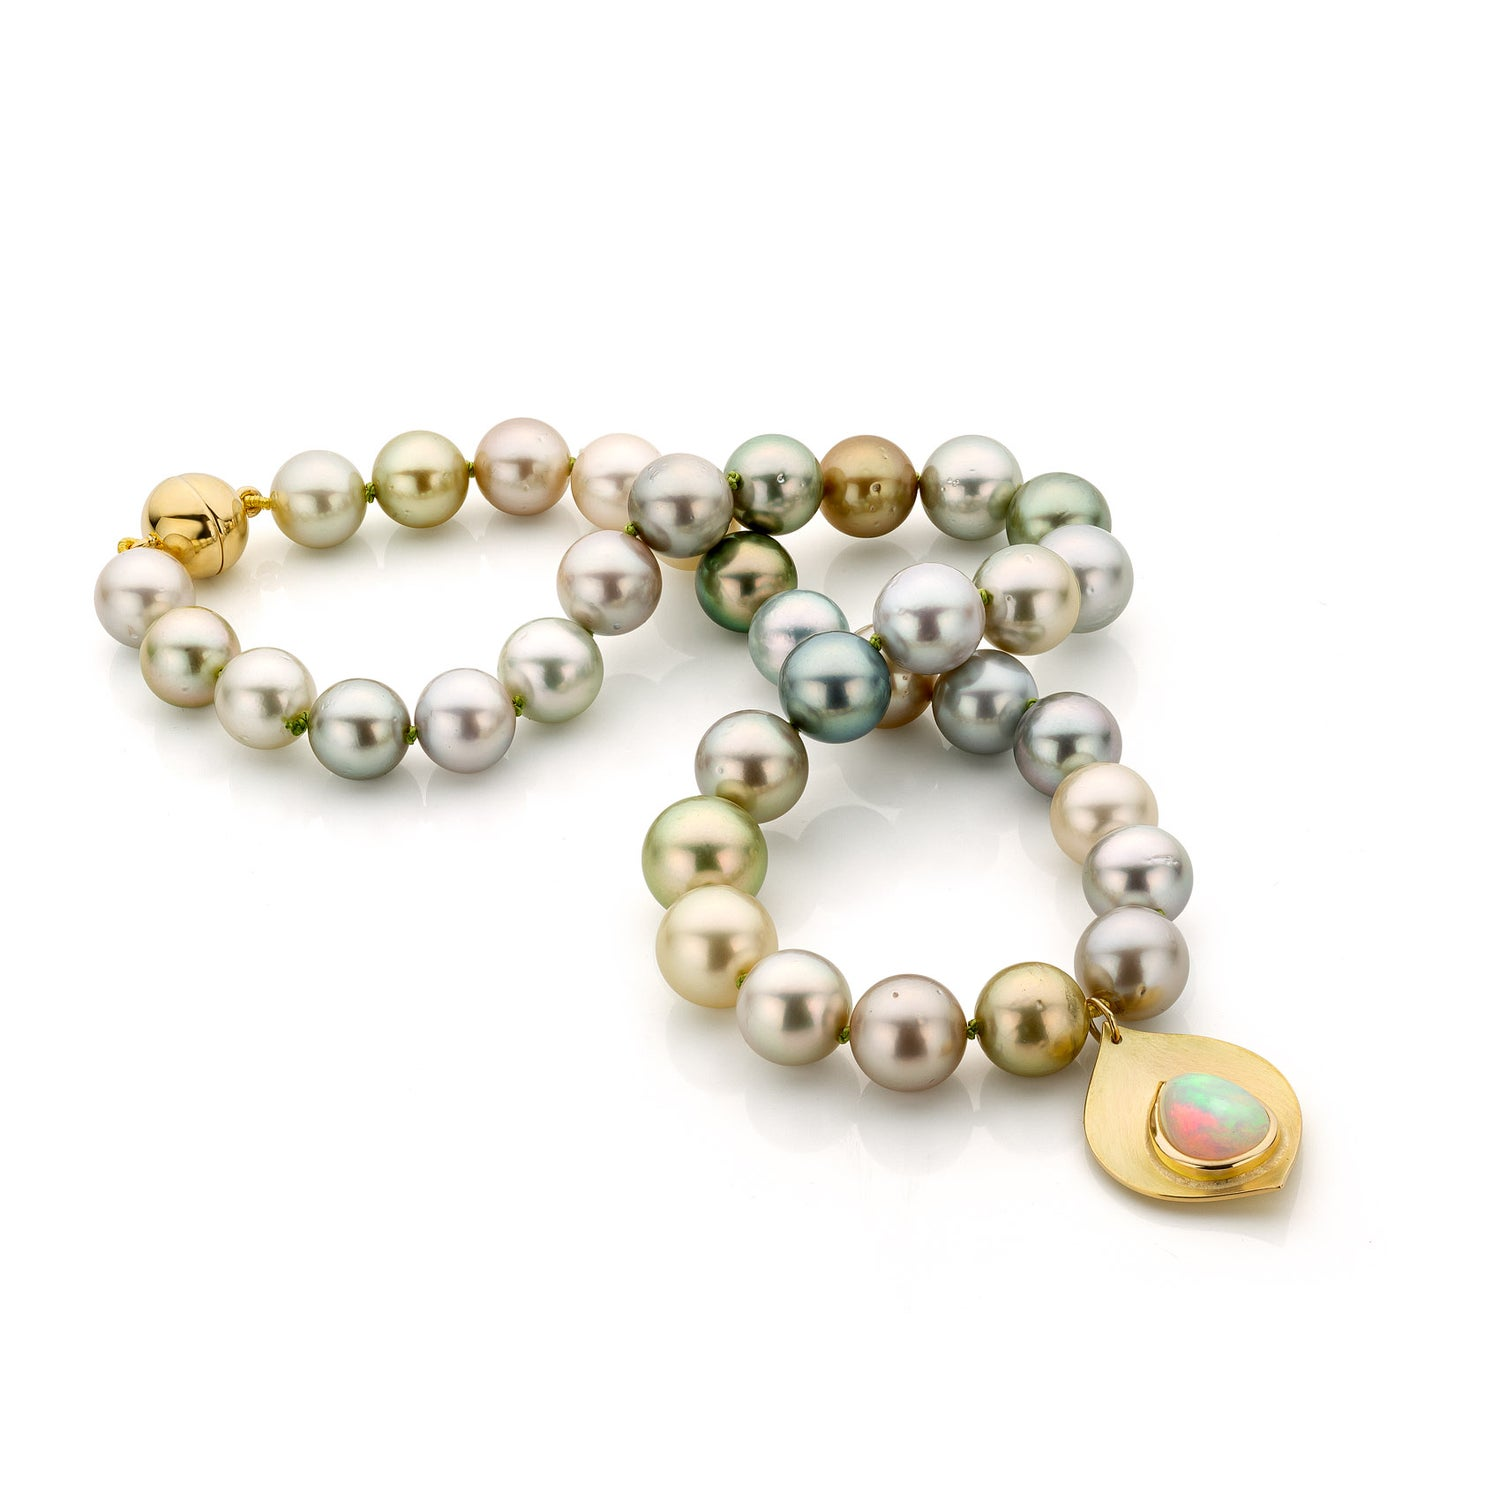 Image of collier: goud, tahitiparels, welo opal - necklace in gold, tahitian pearls, welo opal